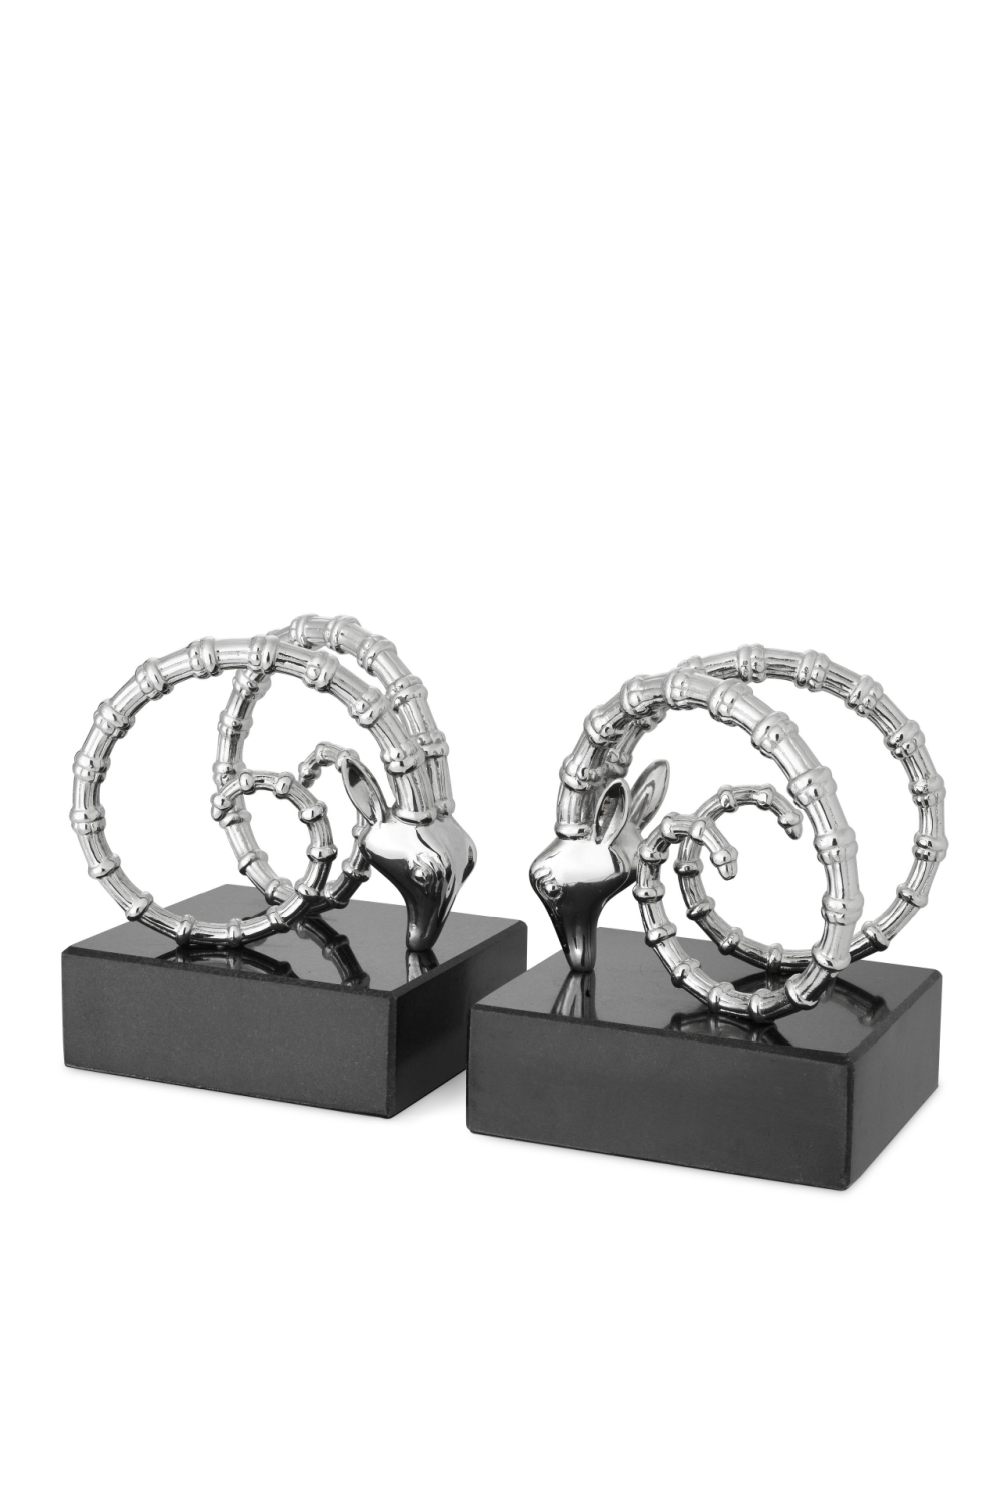 Ibex Bookend set of 2 | Eichholtz Ibex | OROA #1 Eichholtz Online